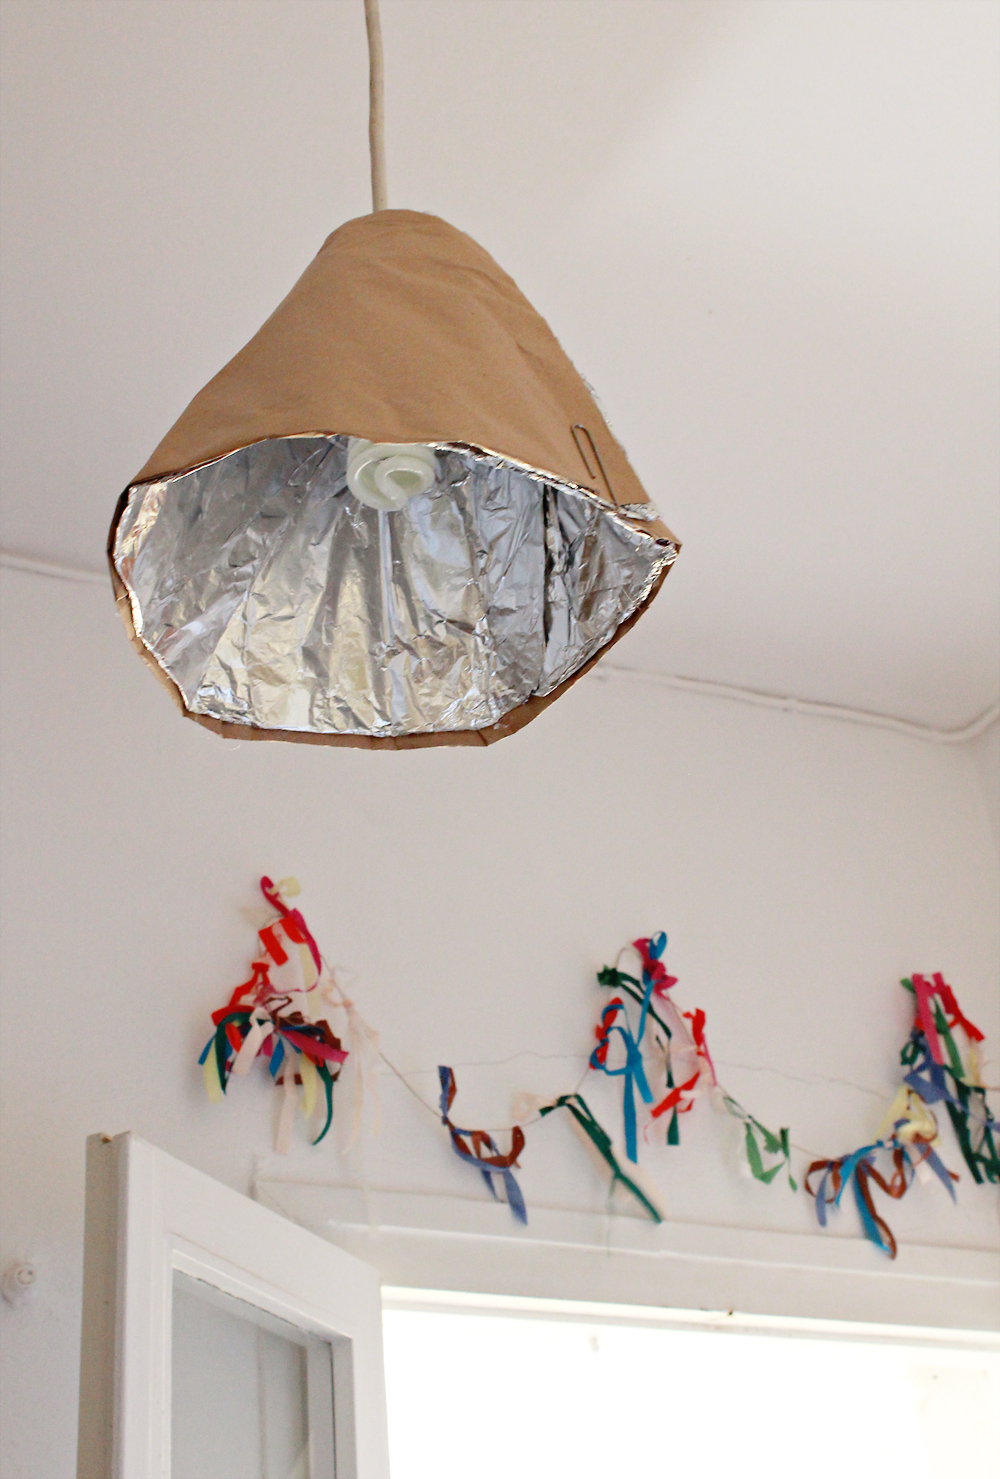 Recycled lamp fixture made from paper towel rolls & aluminum foil 8.jpg